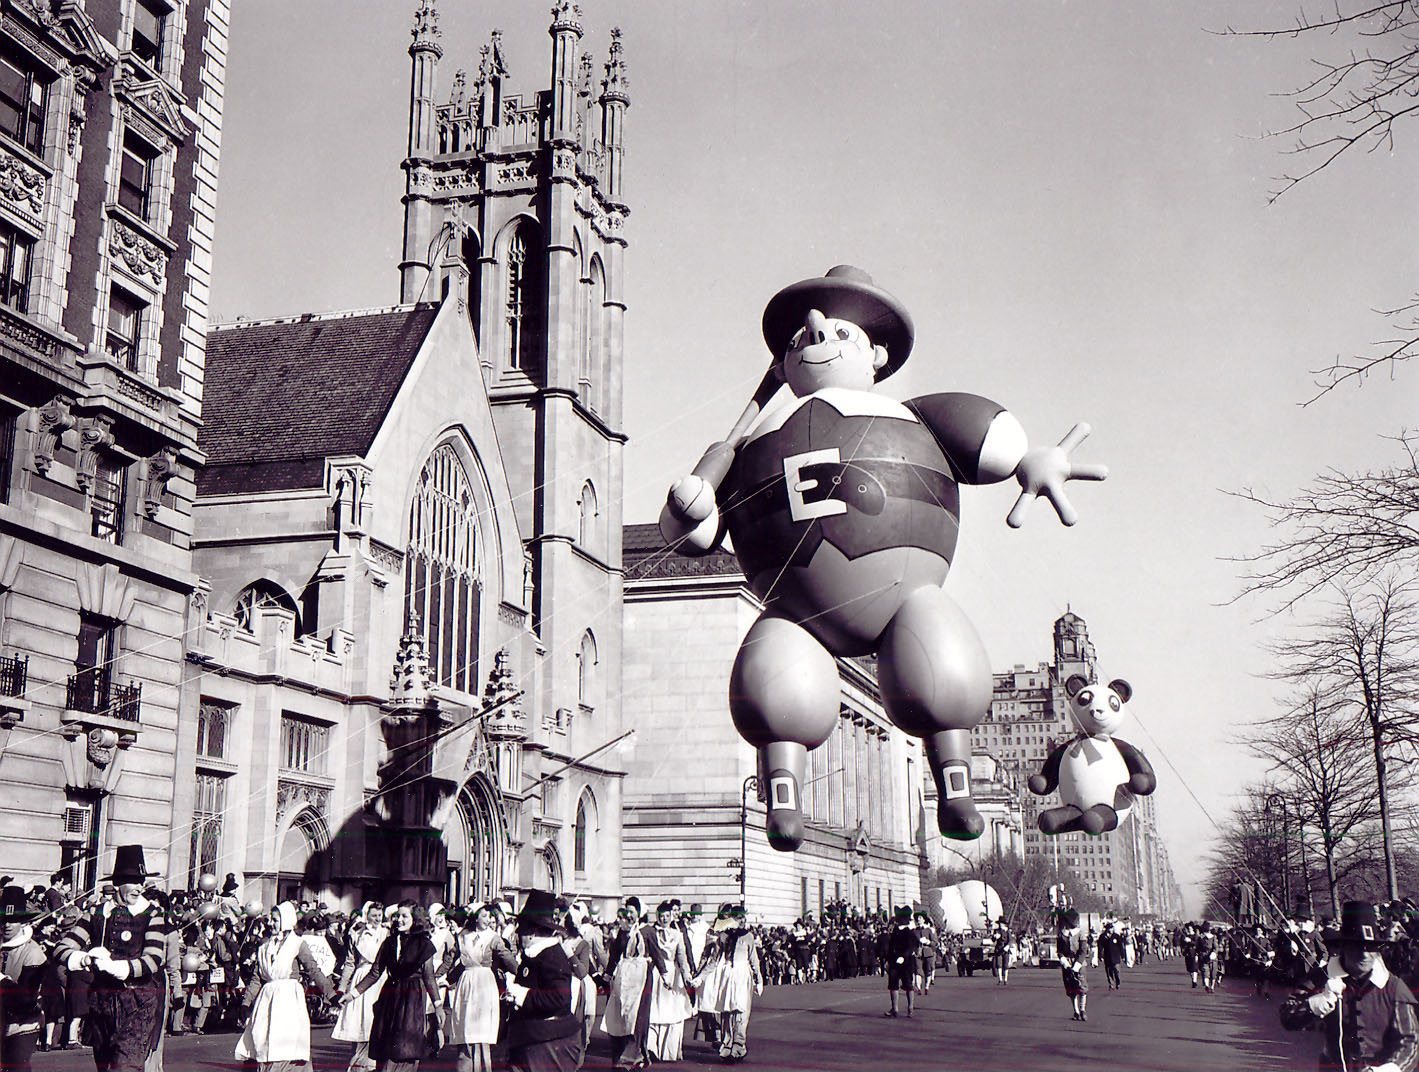 The 96-year history of the Macy's Thanksgiving Day Parade